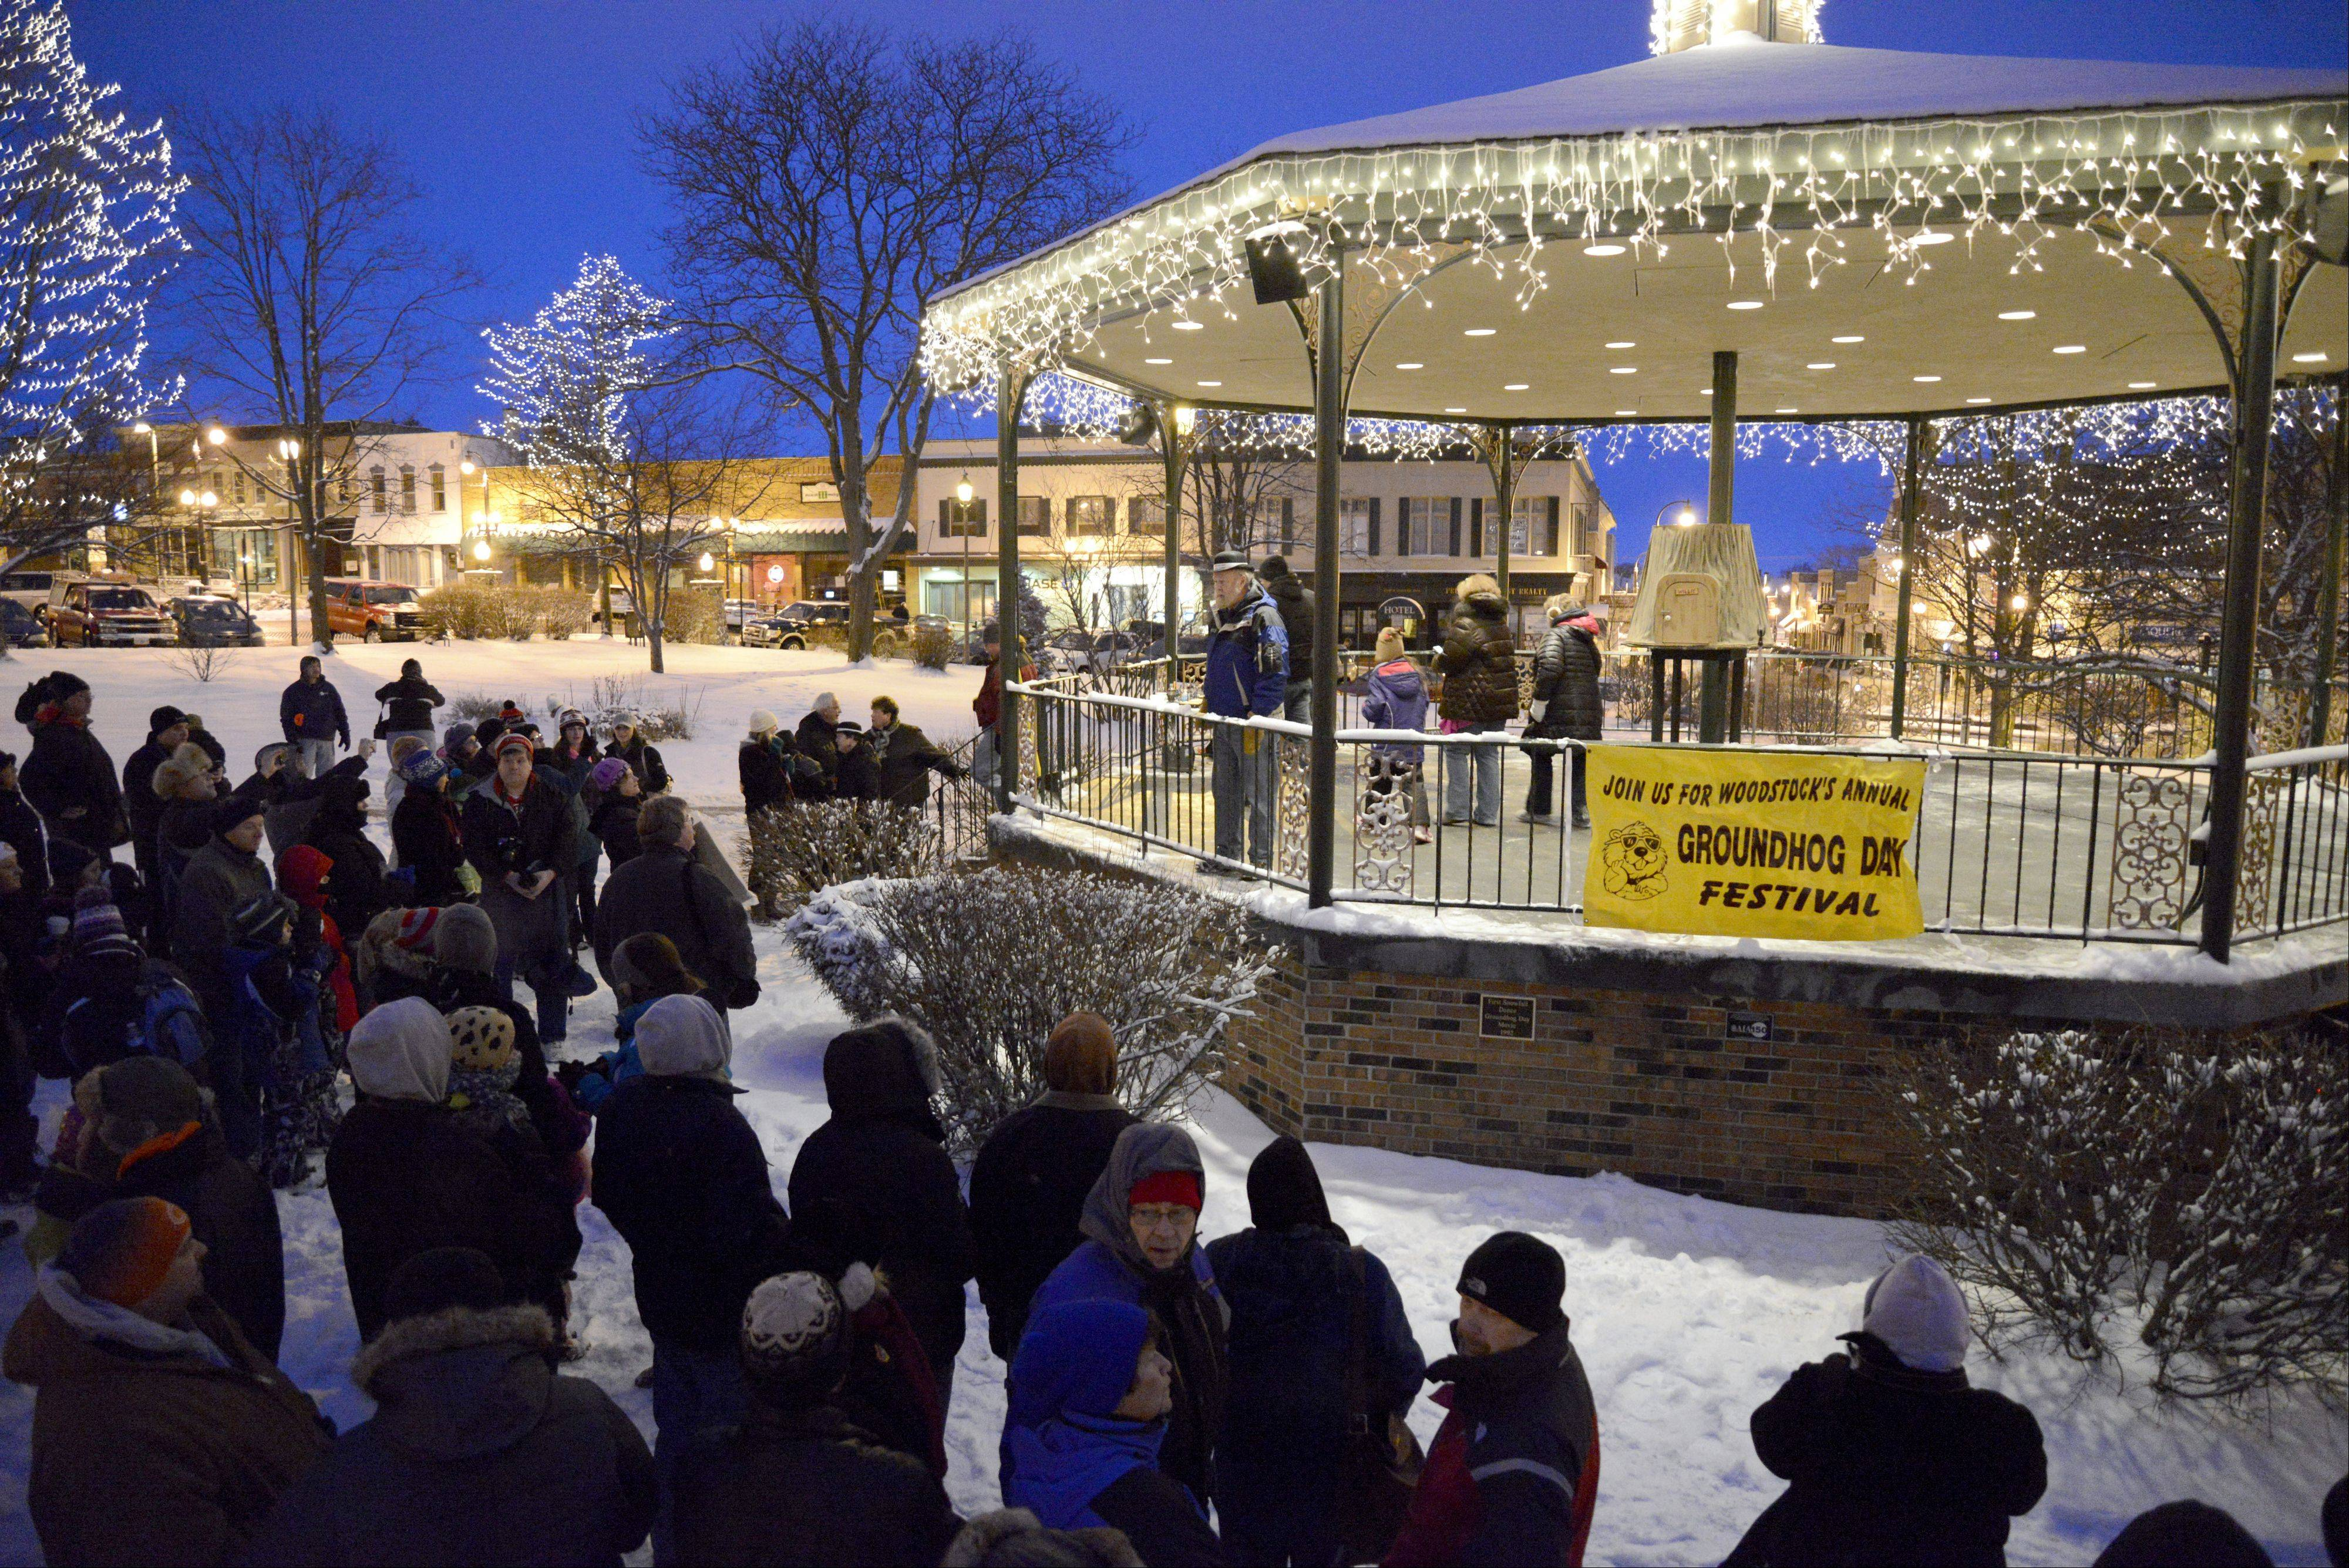 Crowds gather on the Square to hear Woodstock Willie's prognostication at last year's Groundhog Days festival.